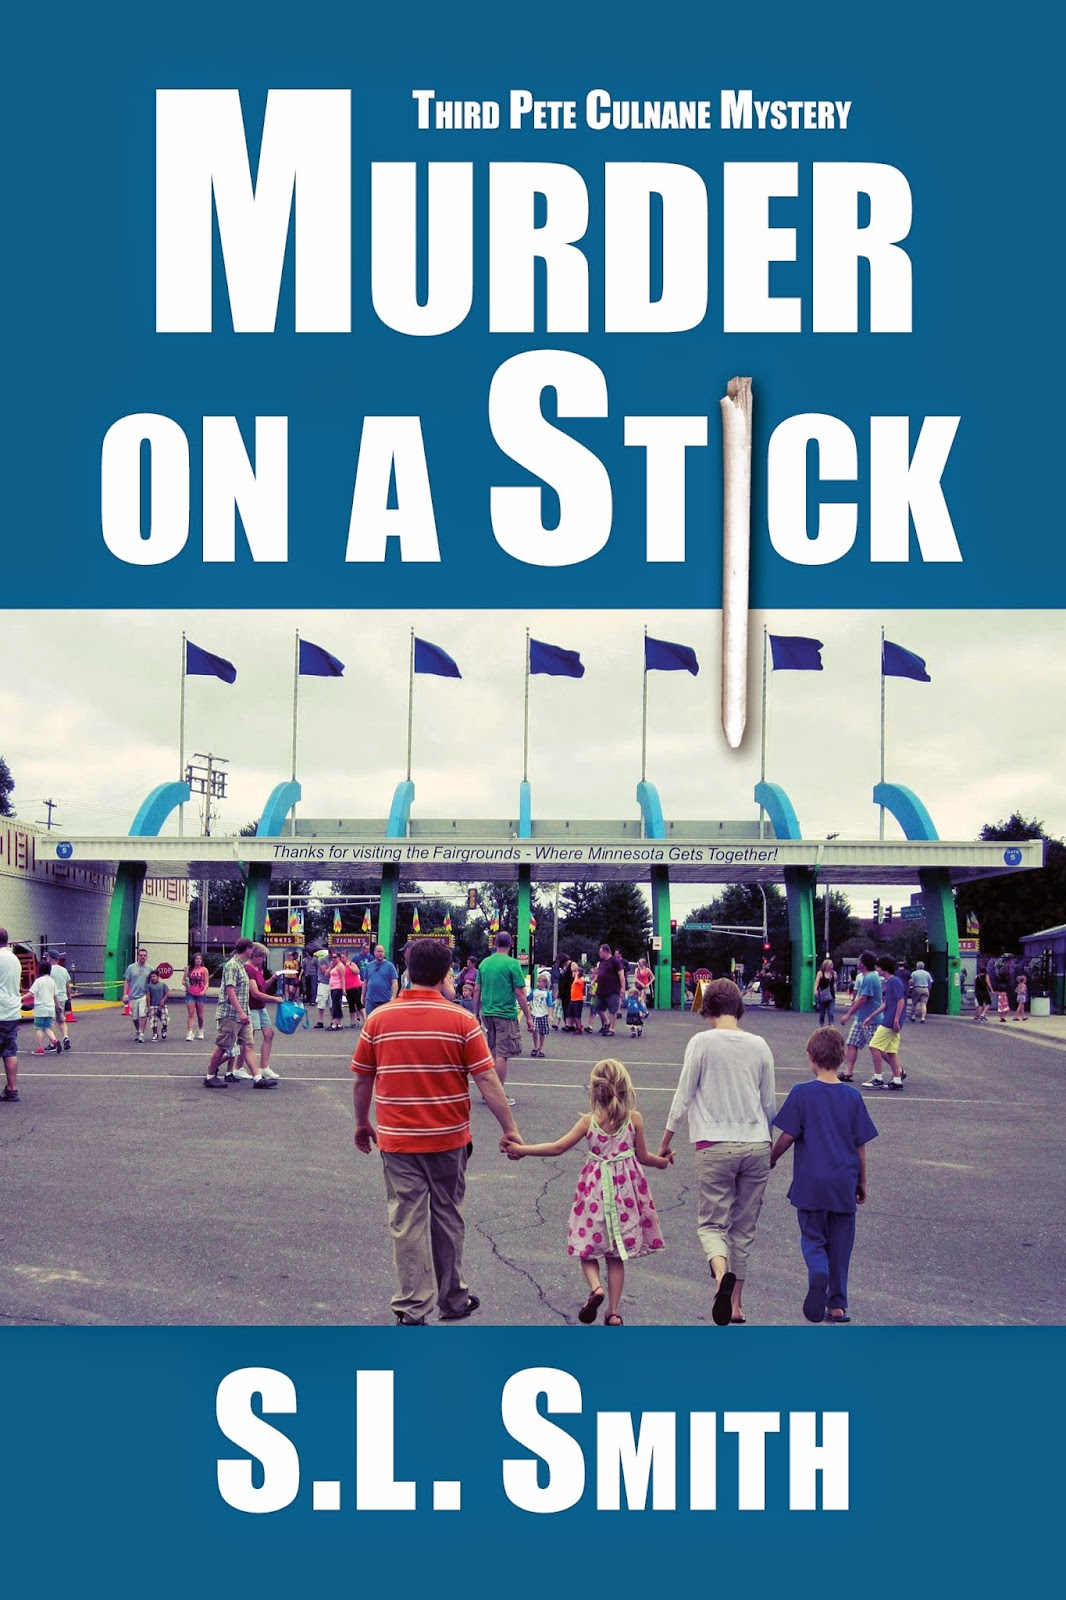 http://www.amazon.com/Murder-Stick-S-L-Smith-ebook/dp/B00O0A707W/ref=sr_1_1?s=books&ie=UTF8&qid=1412451263&sr=1-1&keywords=s.l.+smith